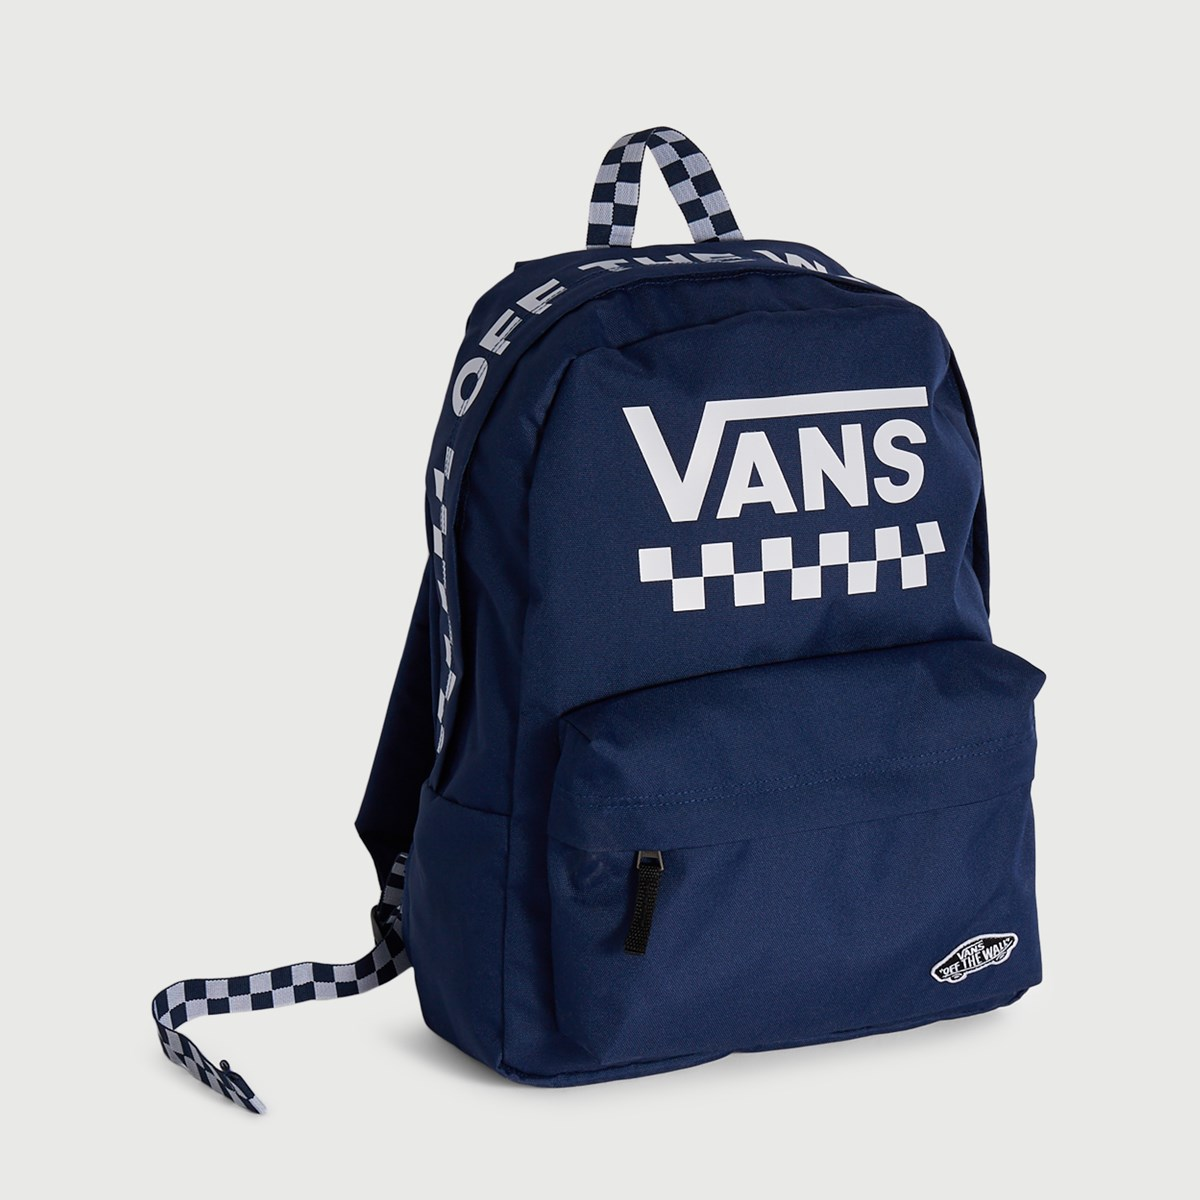 Sporty Realm Backpack in Blue